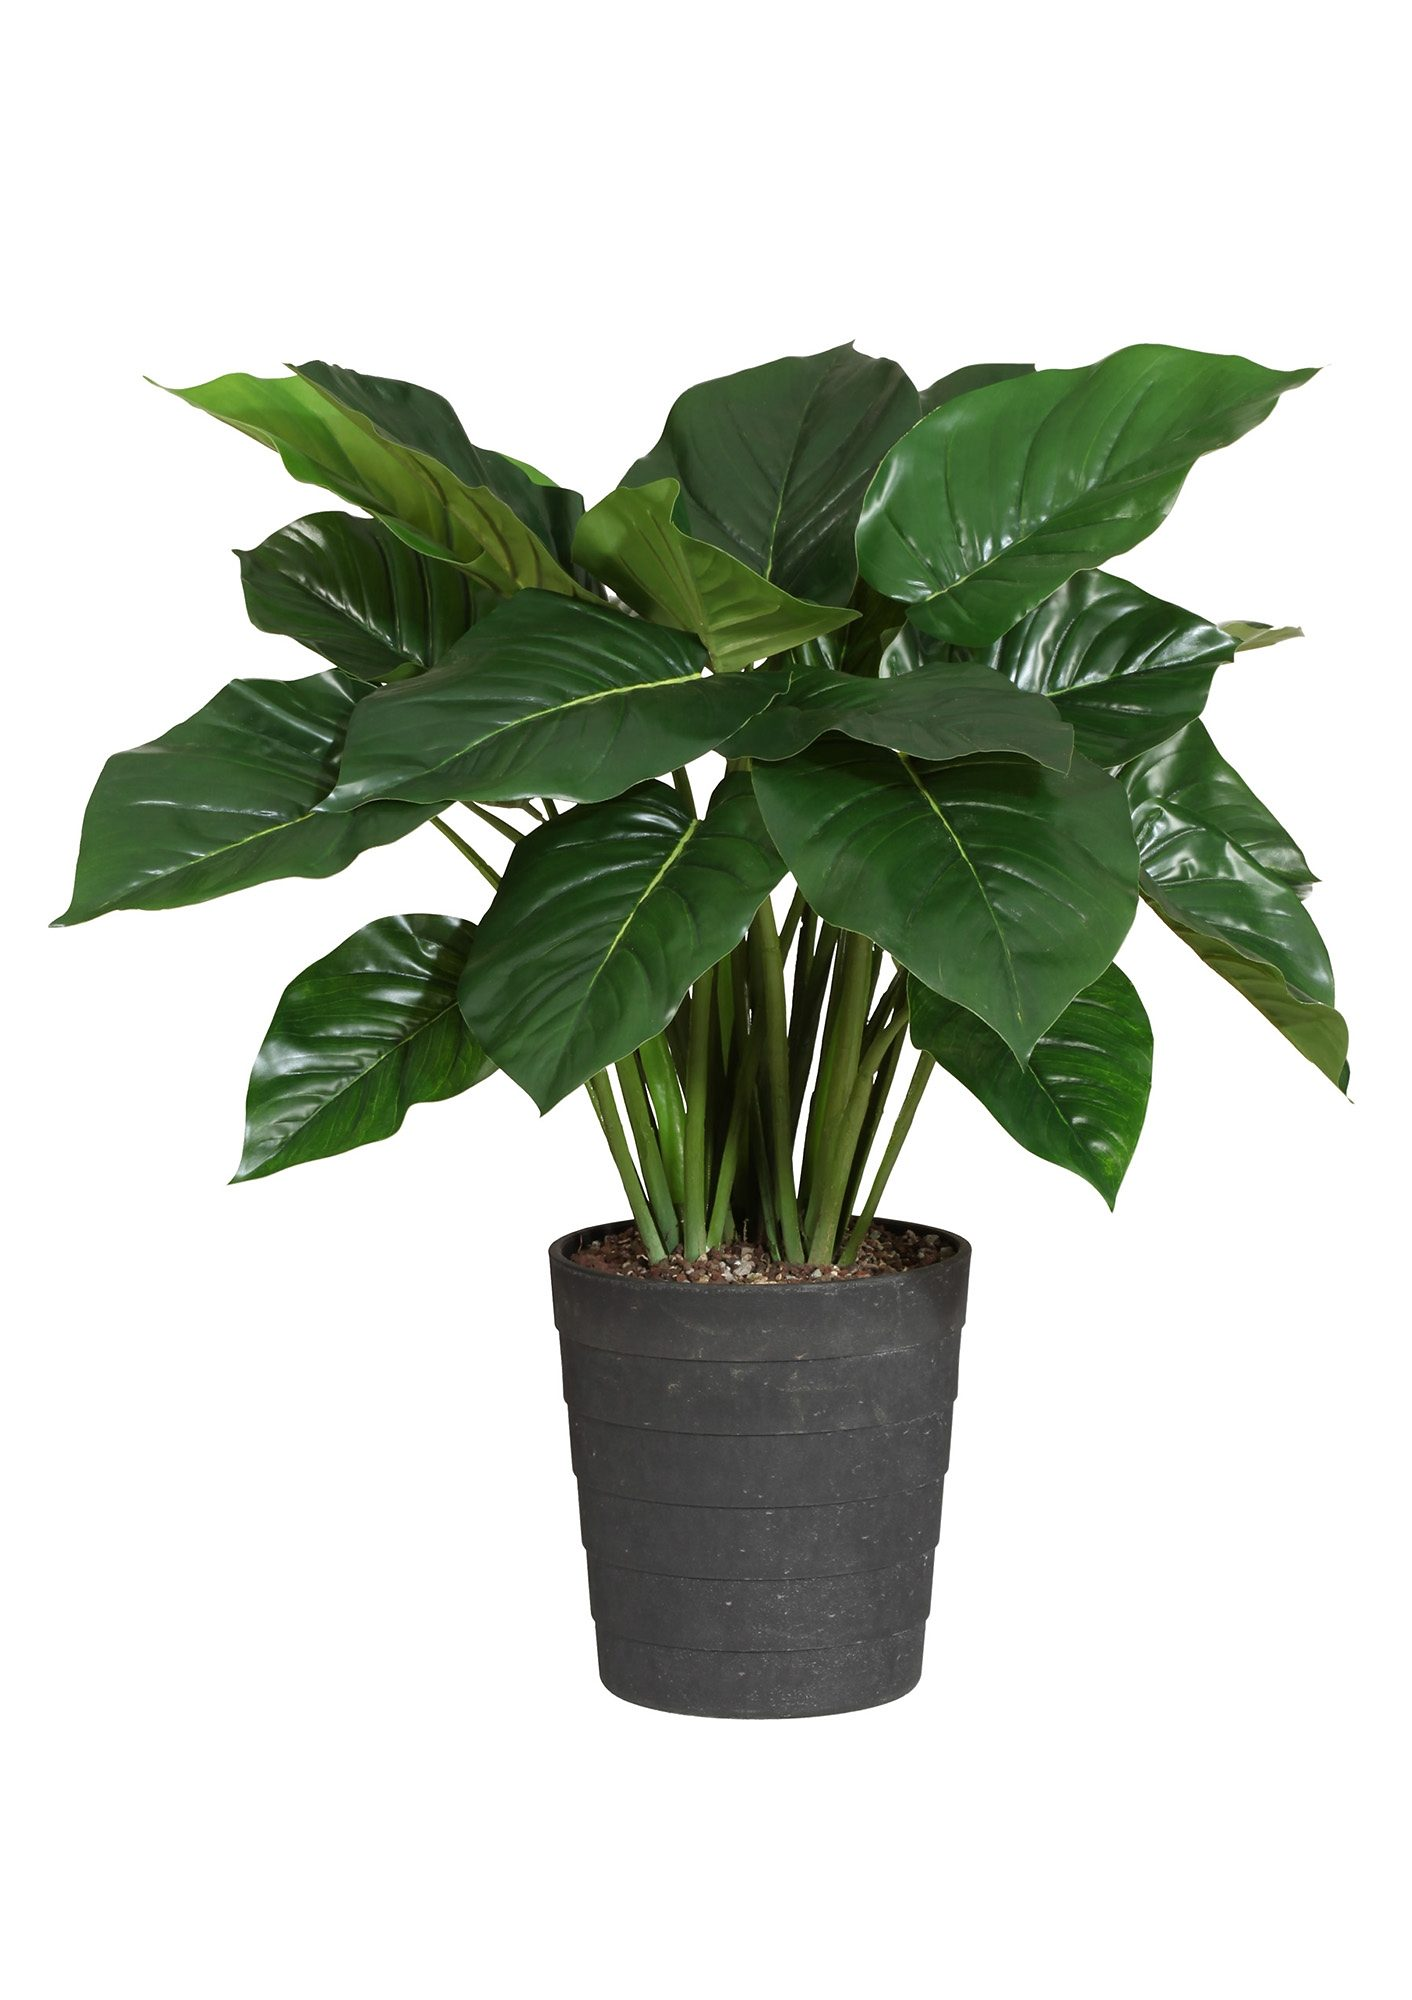 Home affaire Kunstpflanze »Philodendron«